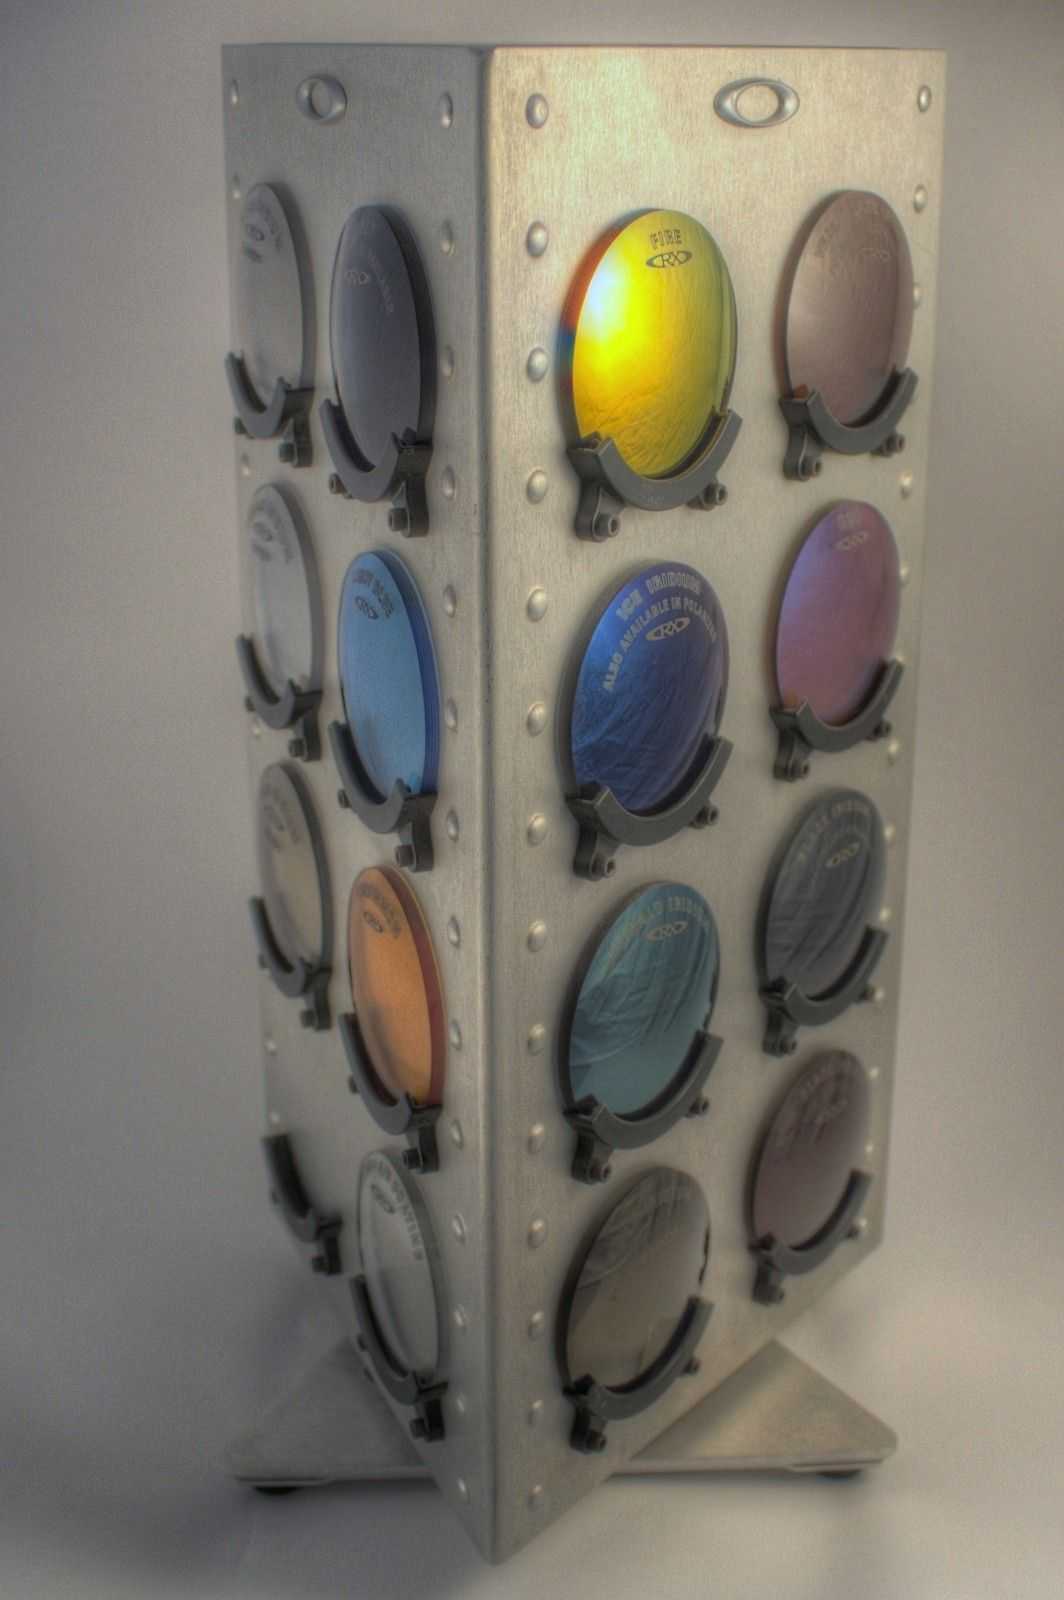 Oakley Display Items: Rotating Lens Display And Coin Holders - 8166617204_3d696183b4_h.jpg